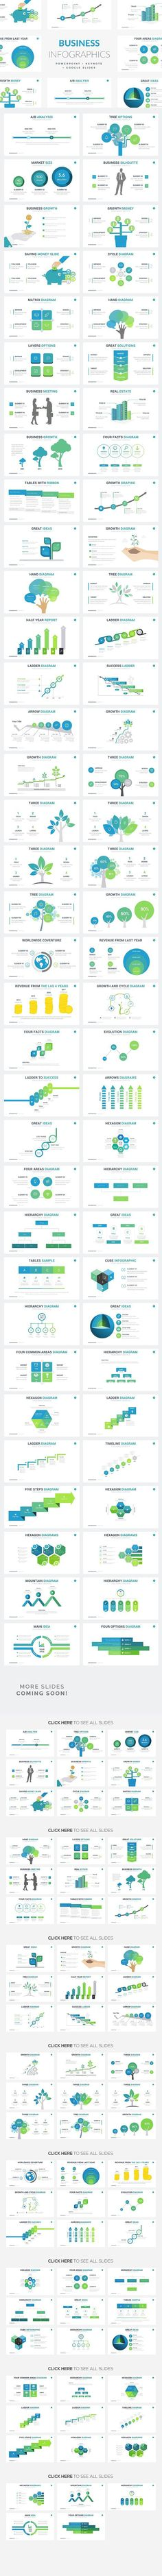 Business Infographics | PPT KEY GS. Presentation Templates